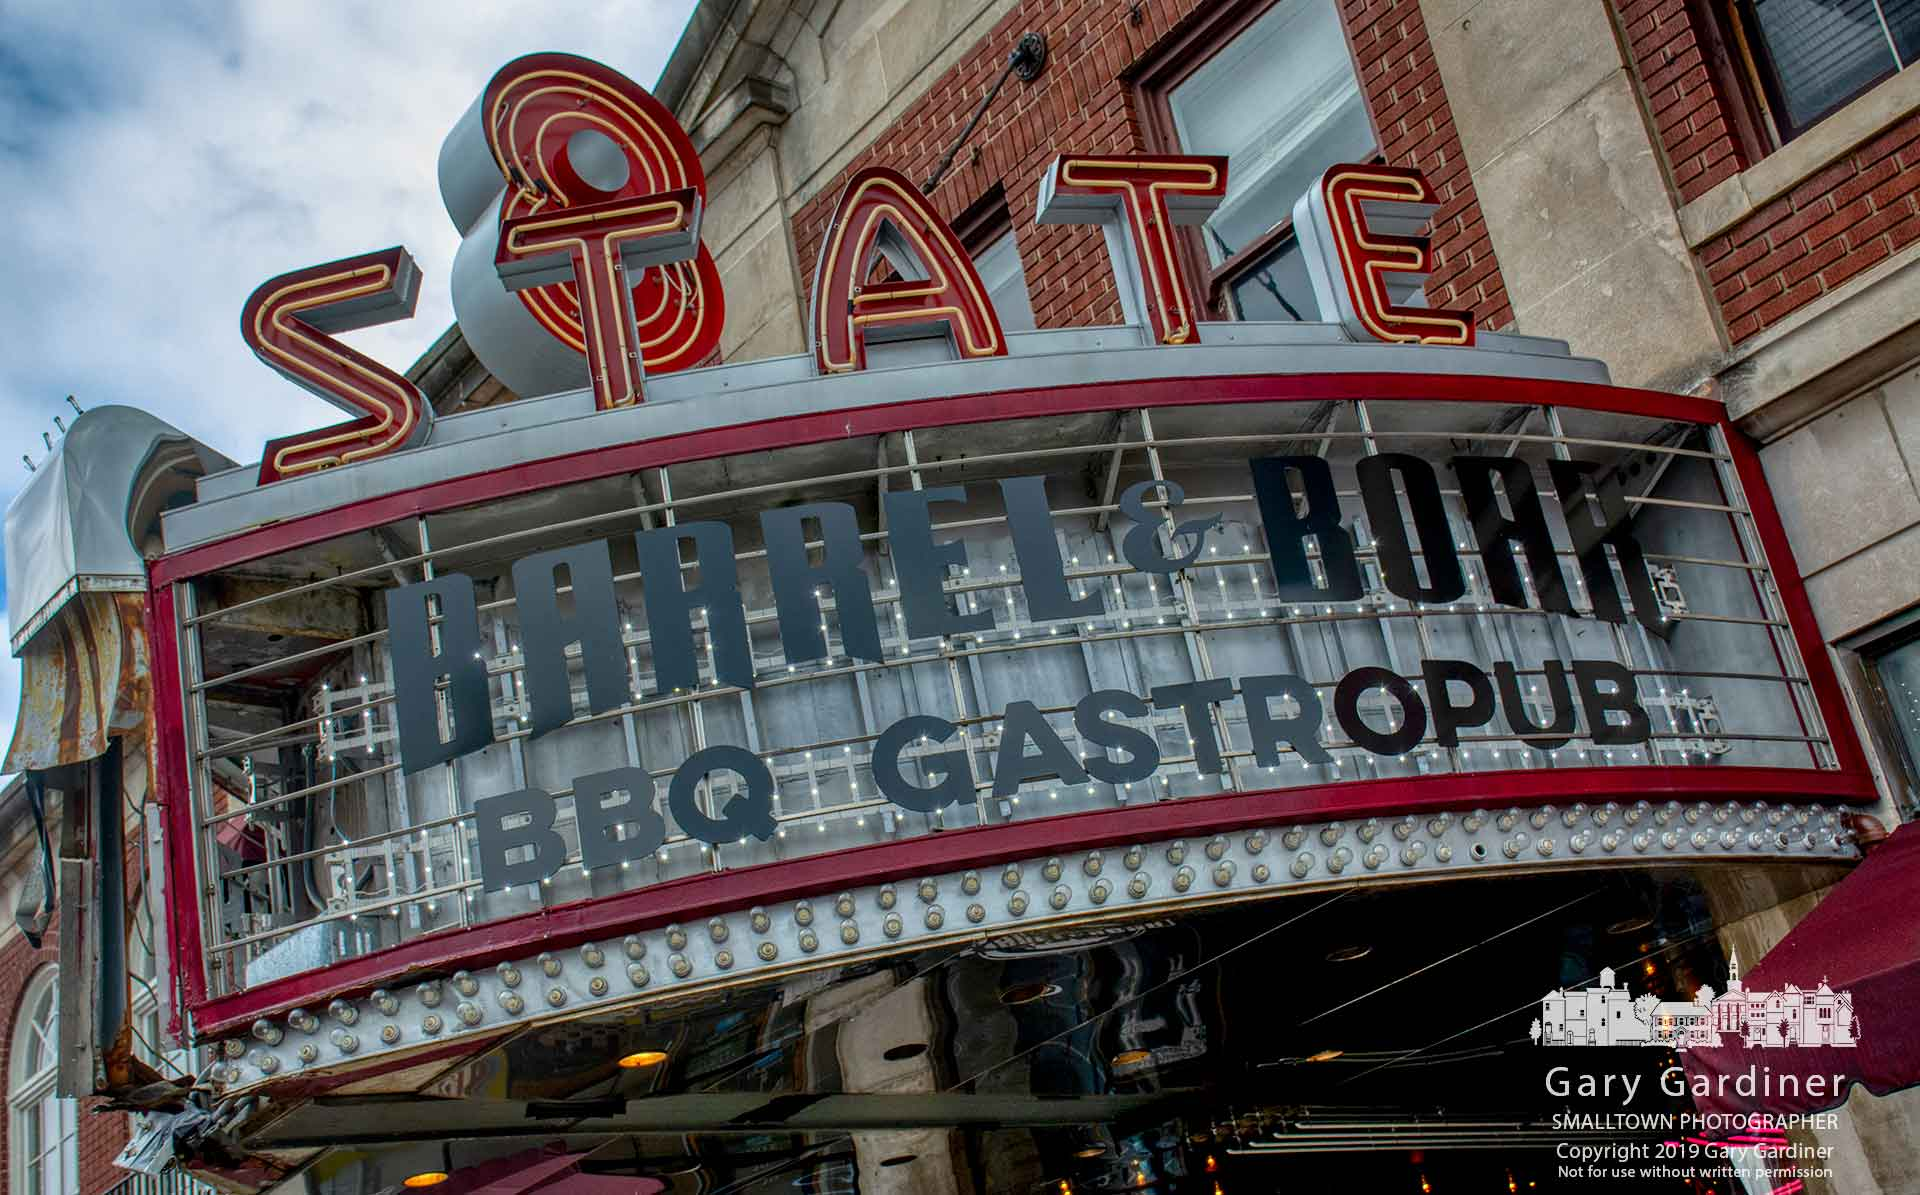 The LEDs that illuminate the 8 State marquee can be seen after workers removed the iconic sign's translucent panels as repairs begin on the damage from a box truck hitting it last year. My Final Photo for March 21, 2019.